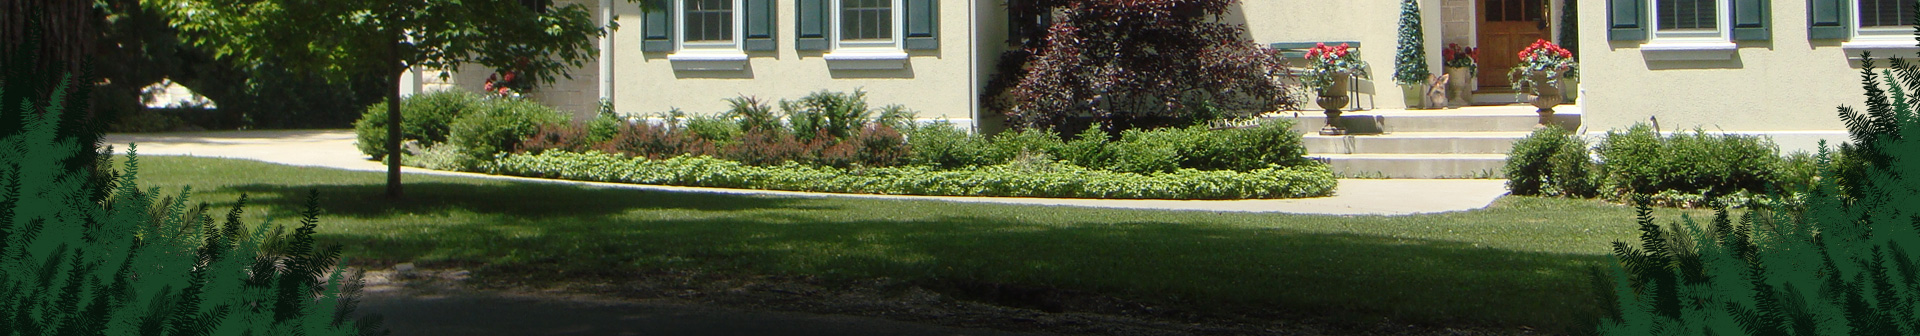 Yard Services for Wisconsin homeowners